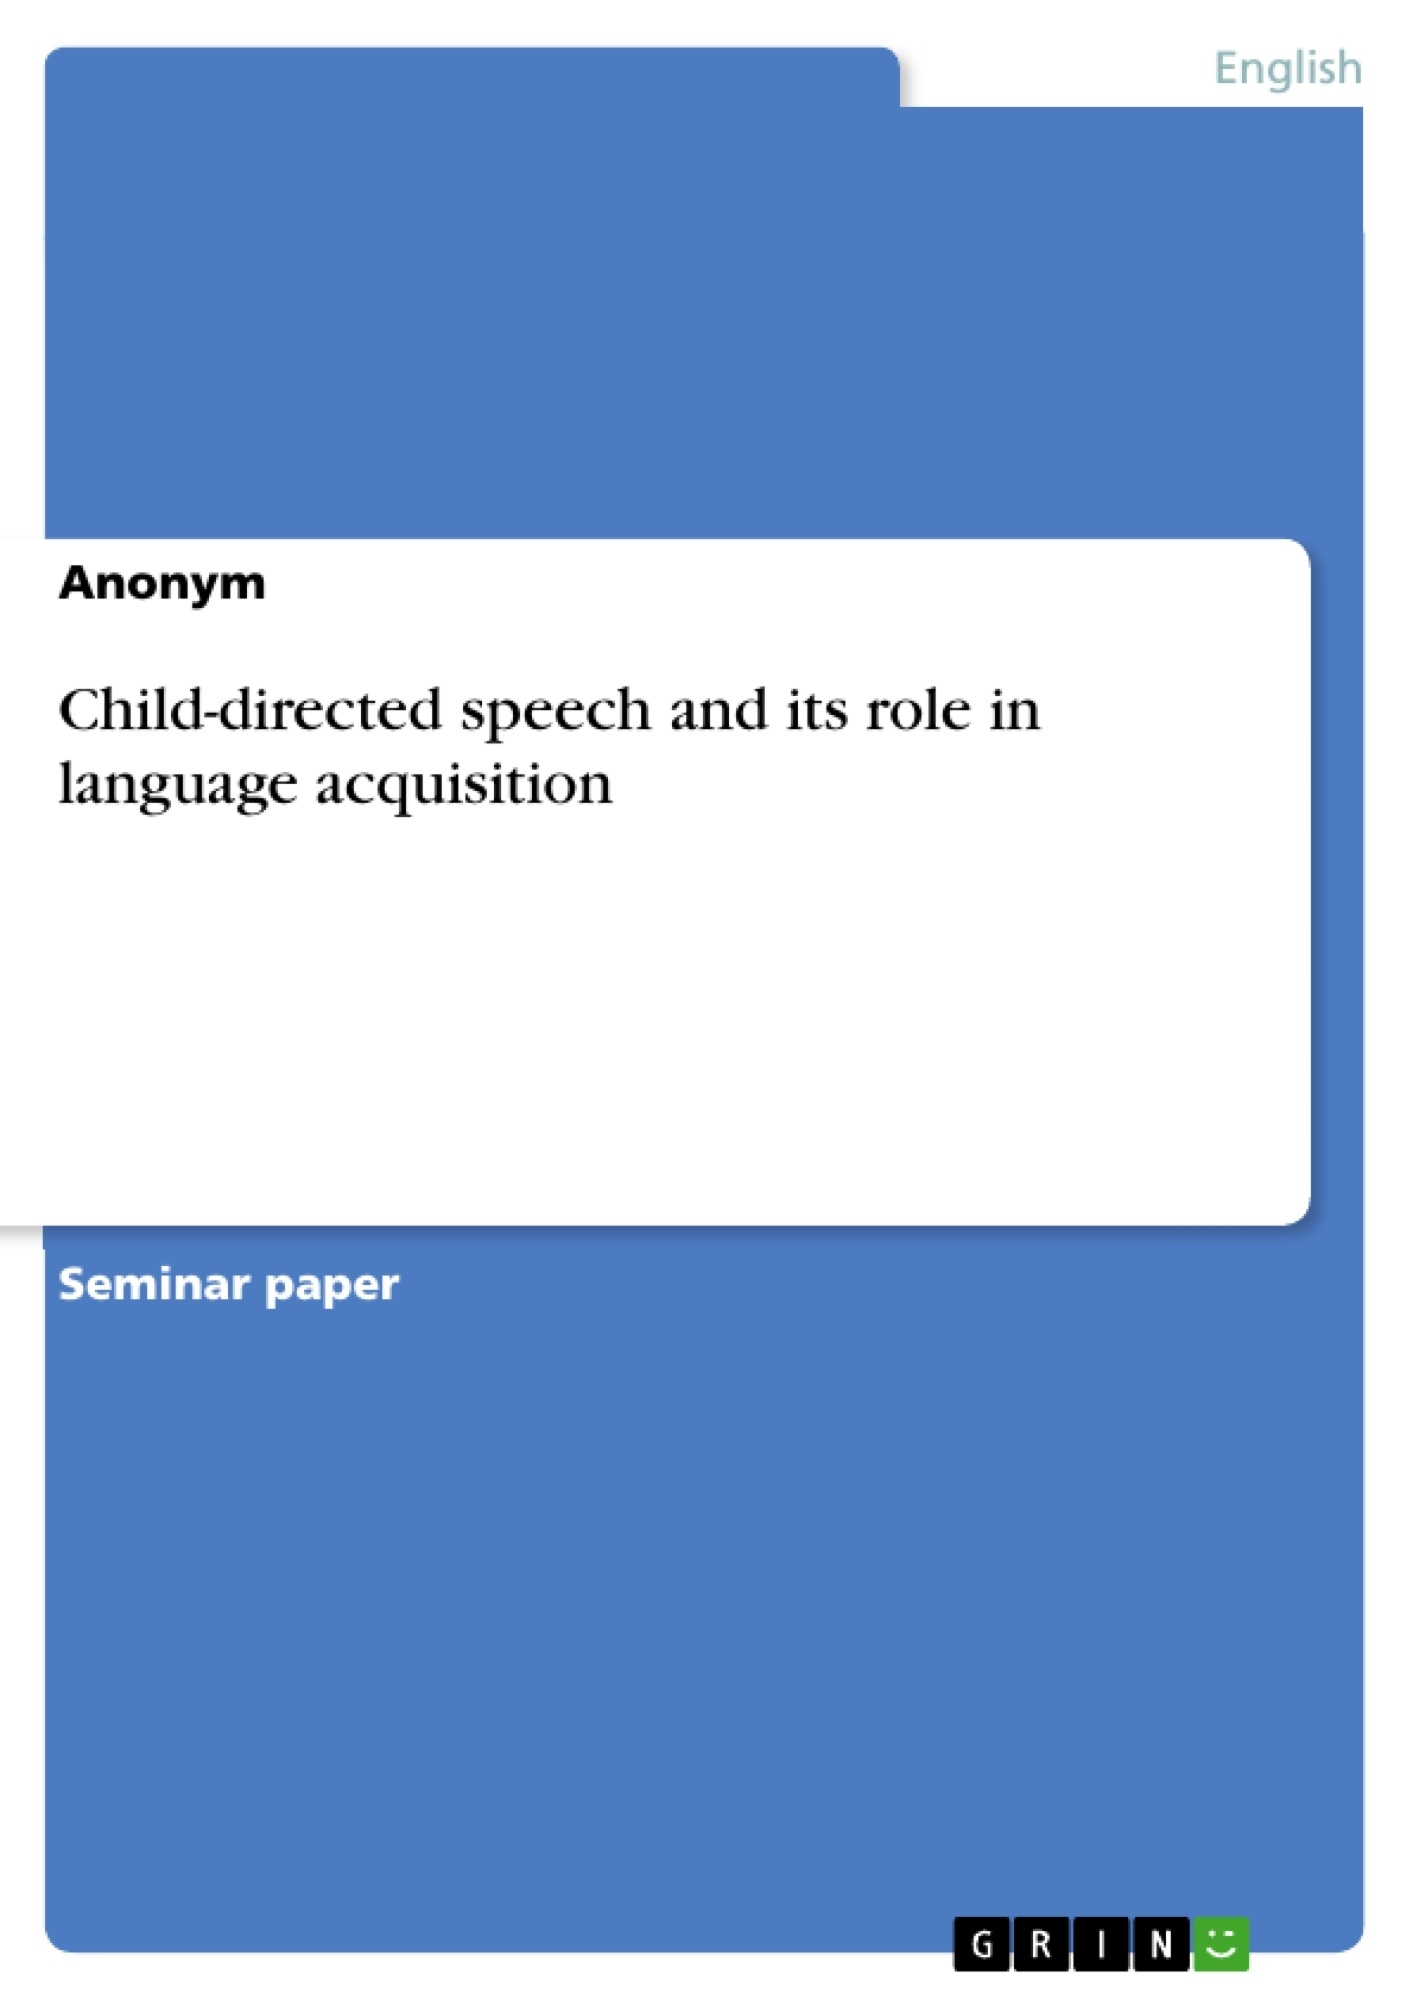 Title: Child-directed speech and its role in language acquisition